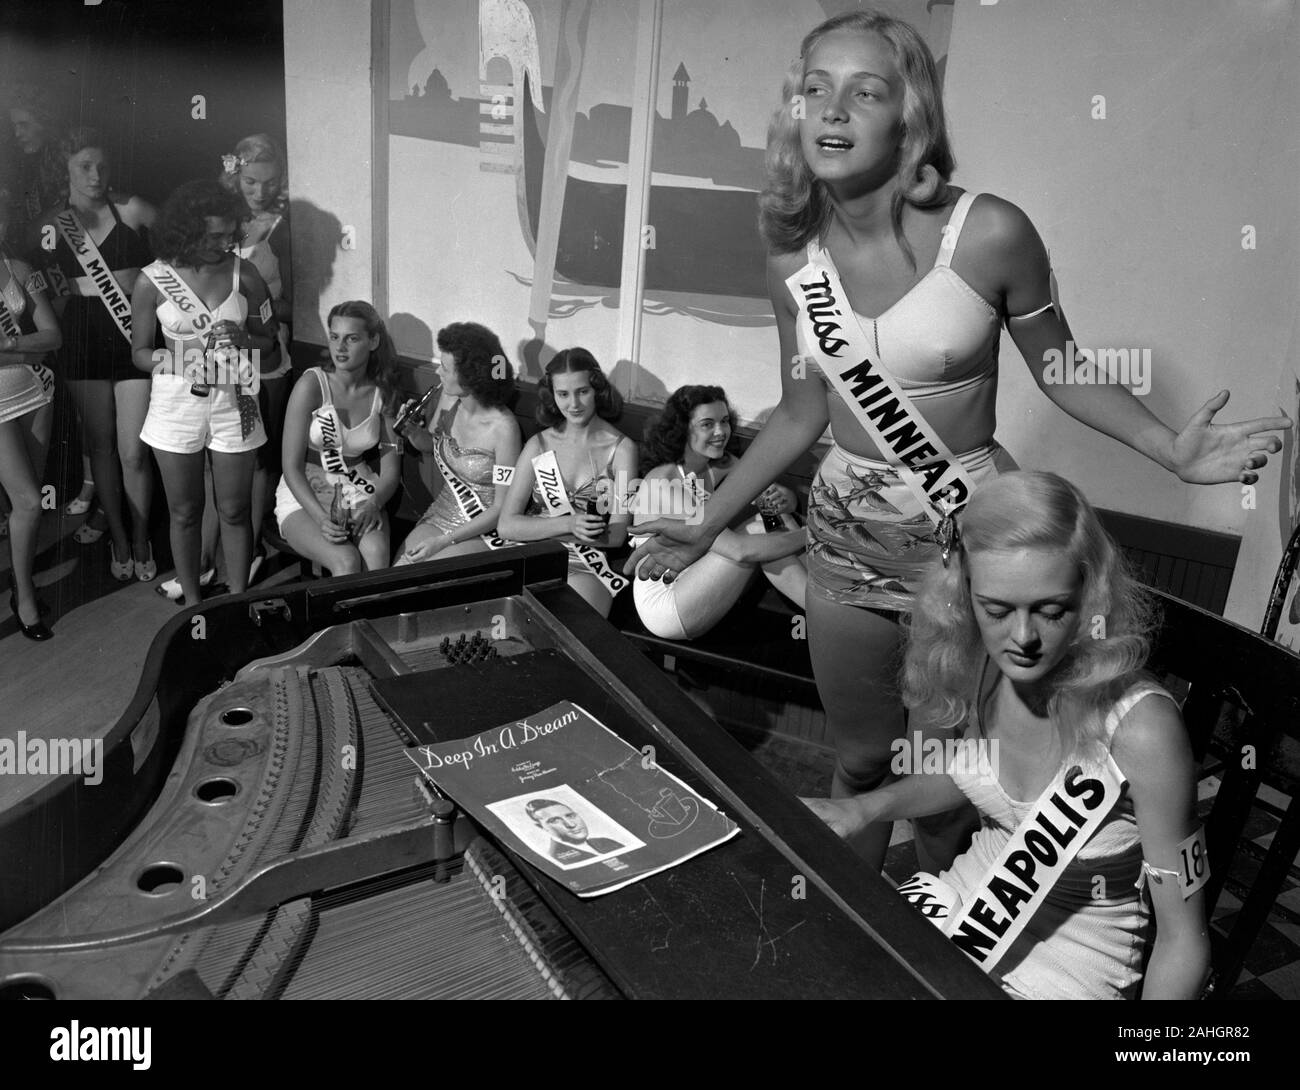 Contestants in the Miss Minnesota Beauty Pageant, 1946 Stock Photo